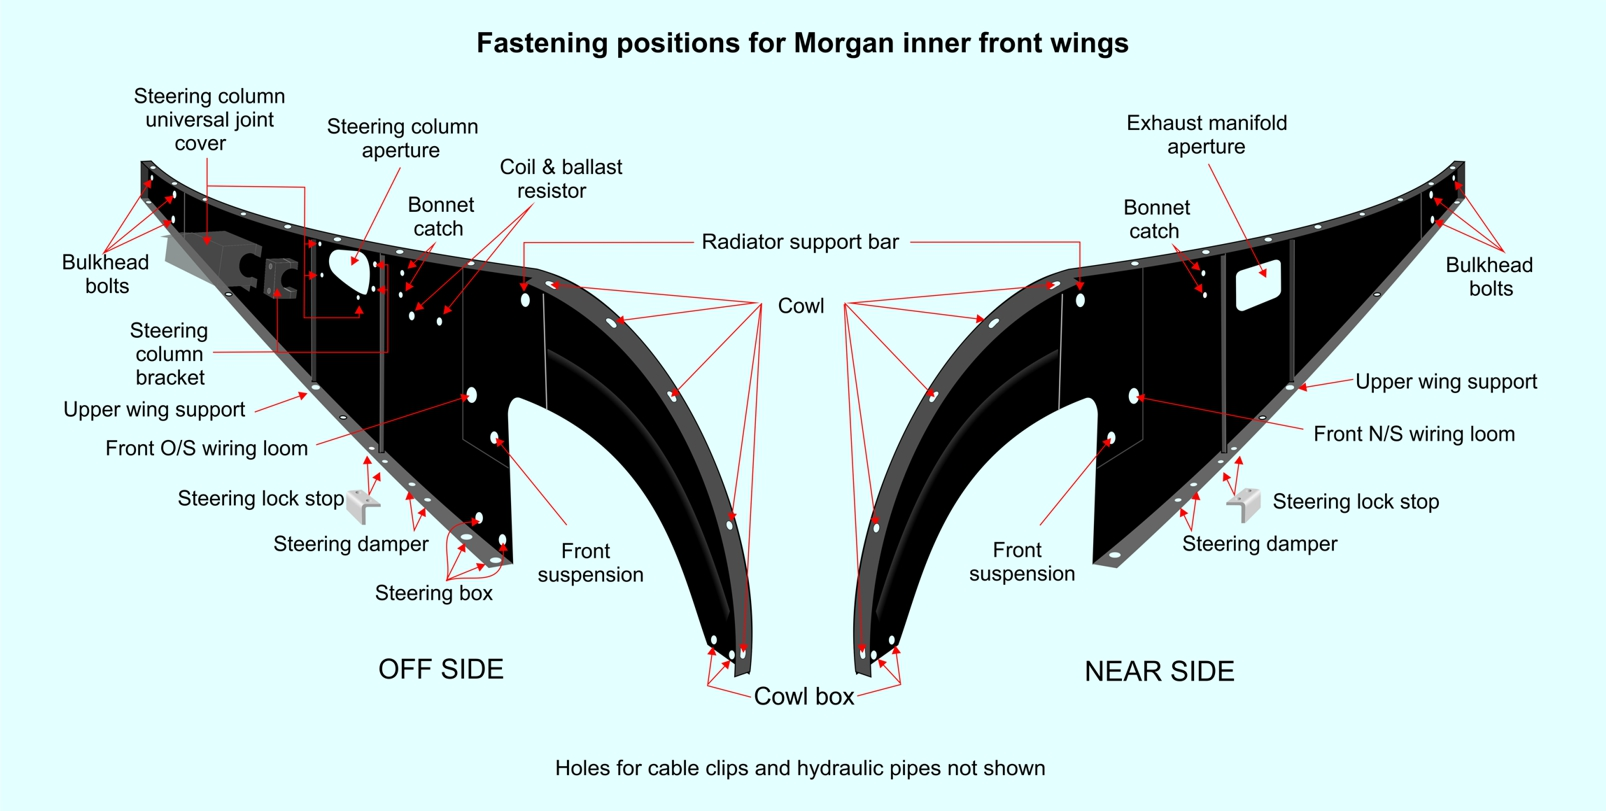 Morgan inner front wings